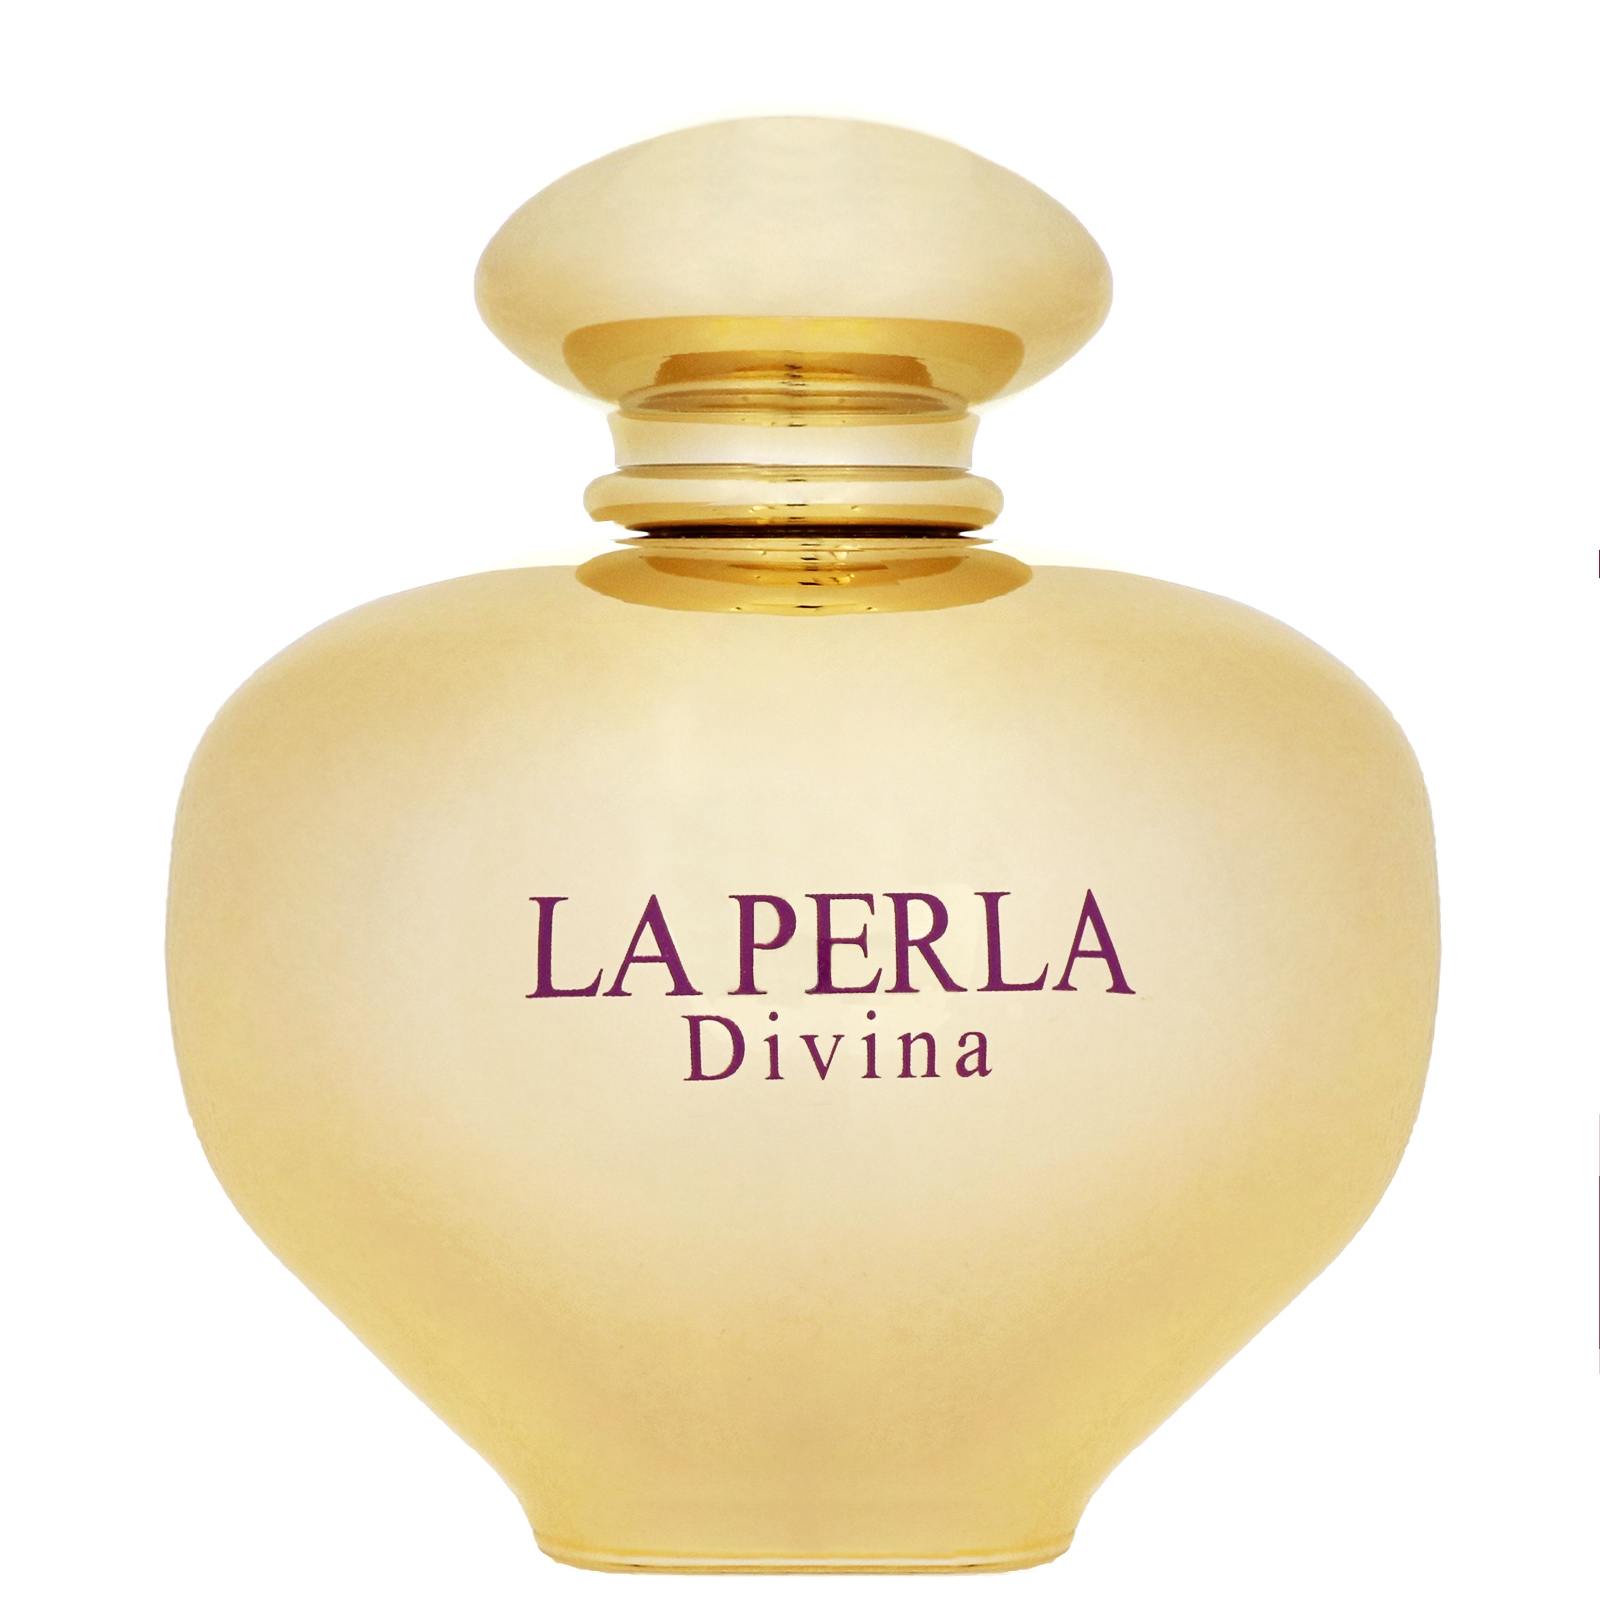 La Perla Divina  Gold Edition Eau de Toilette Spray 80ml